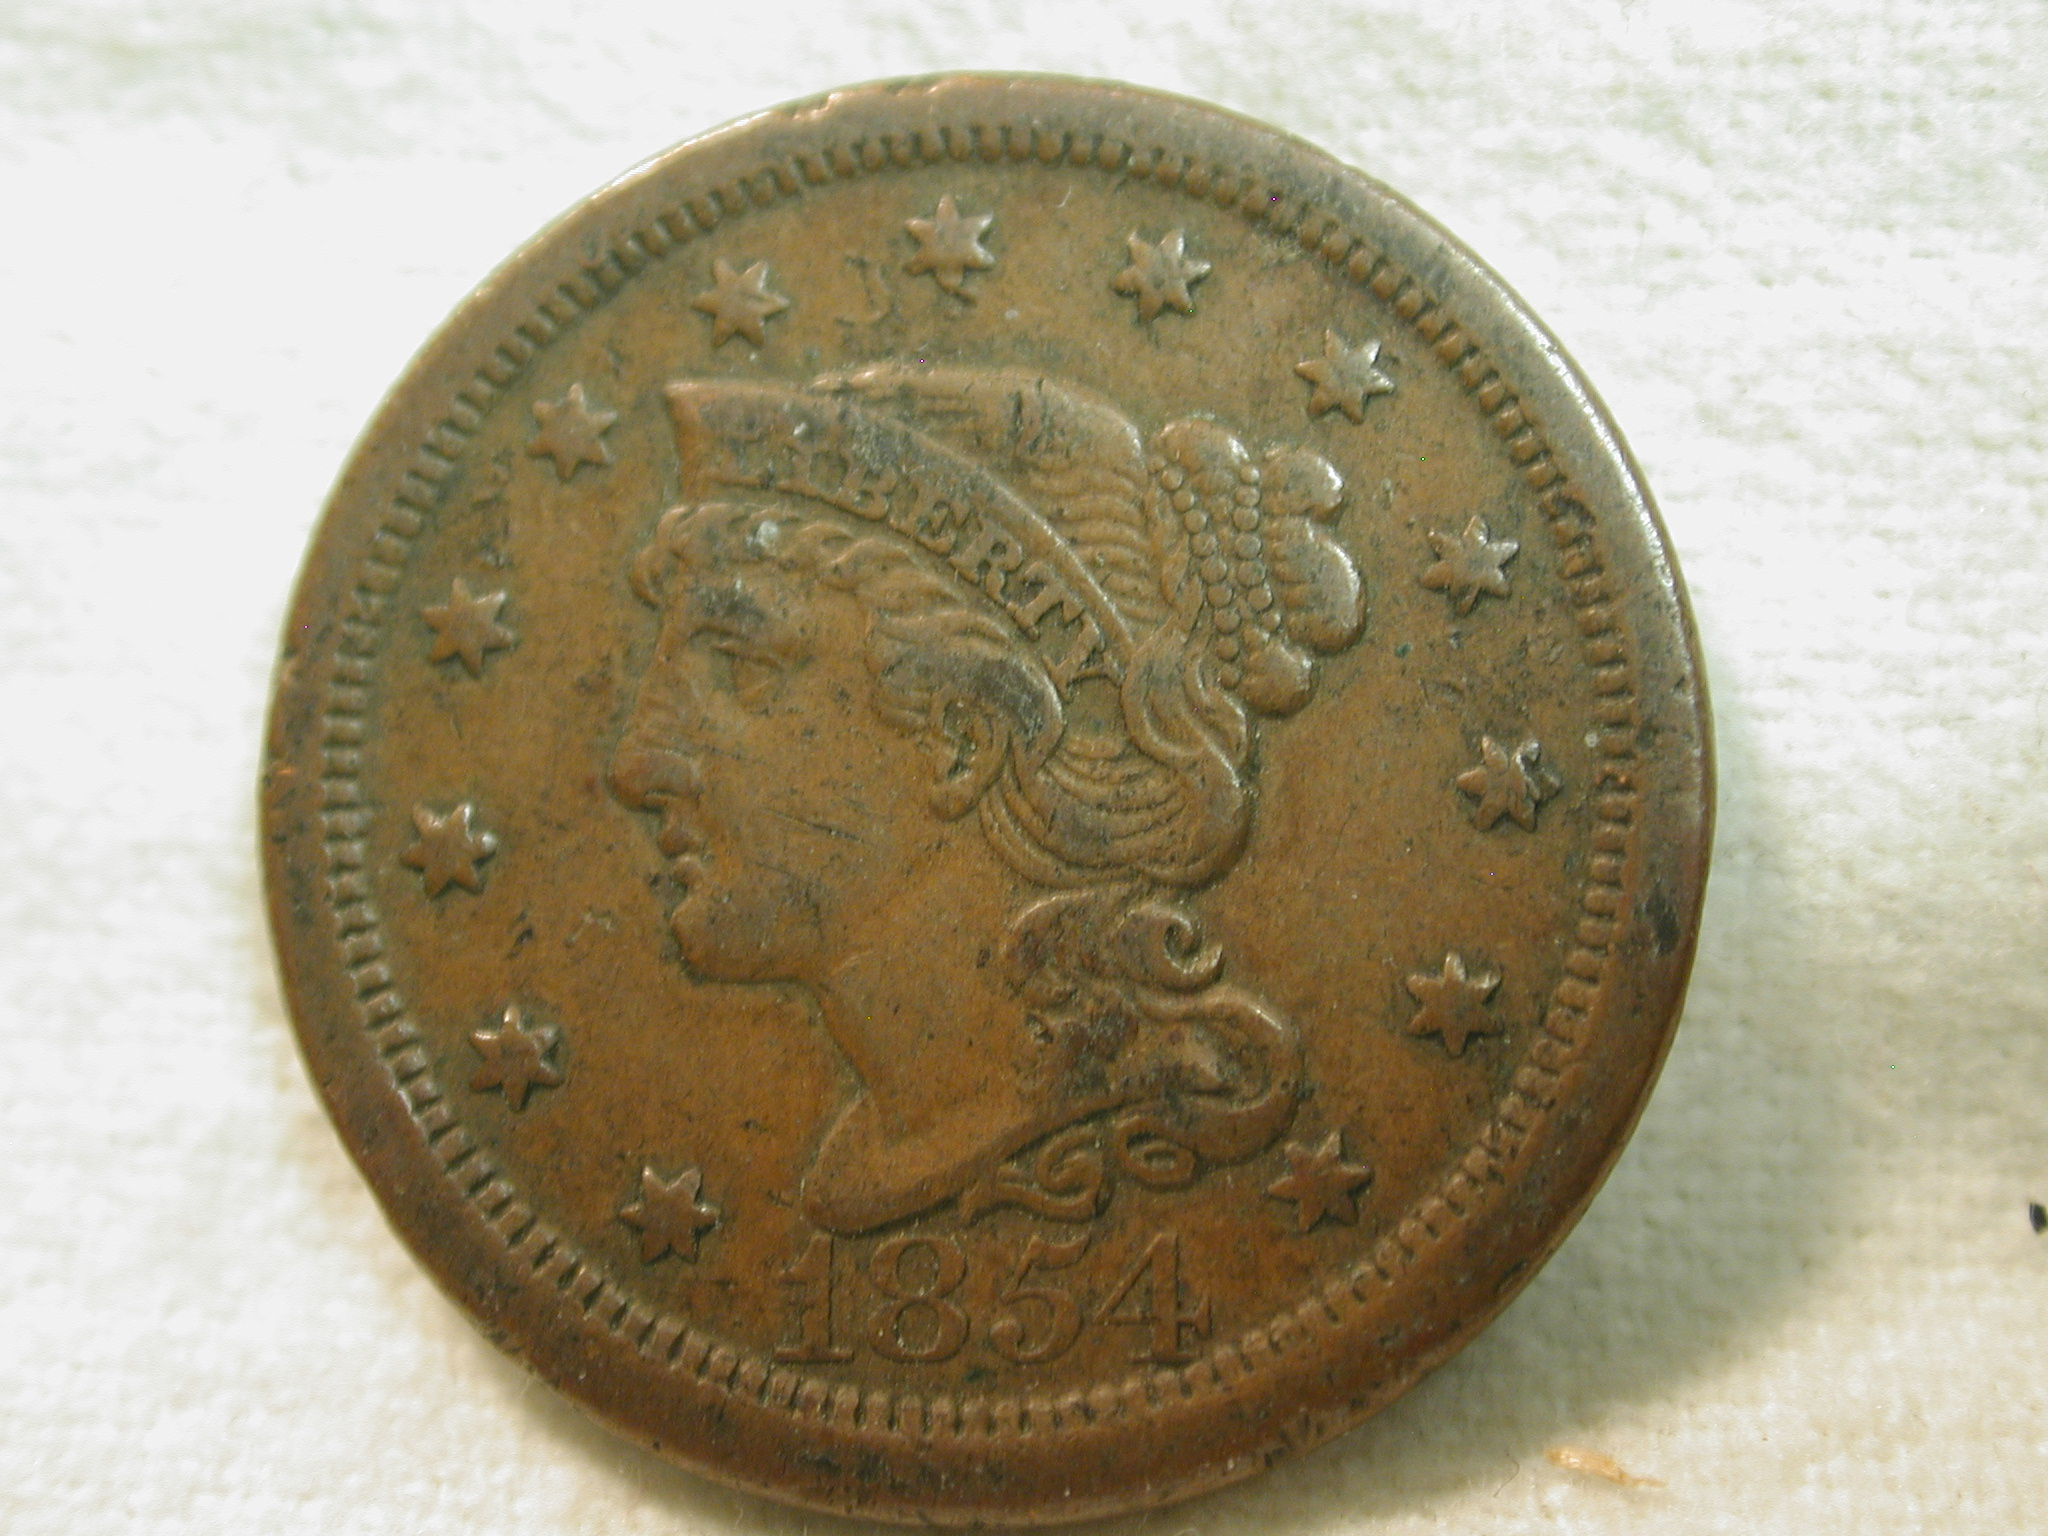 1854 U.S. Large Cent (Braided Hair) Very Fine